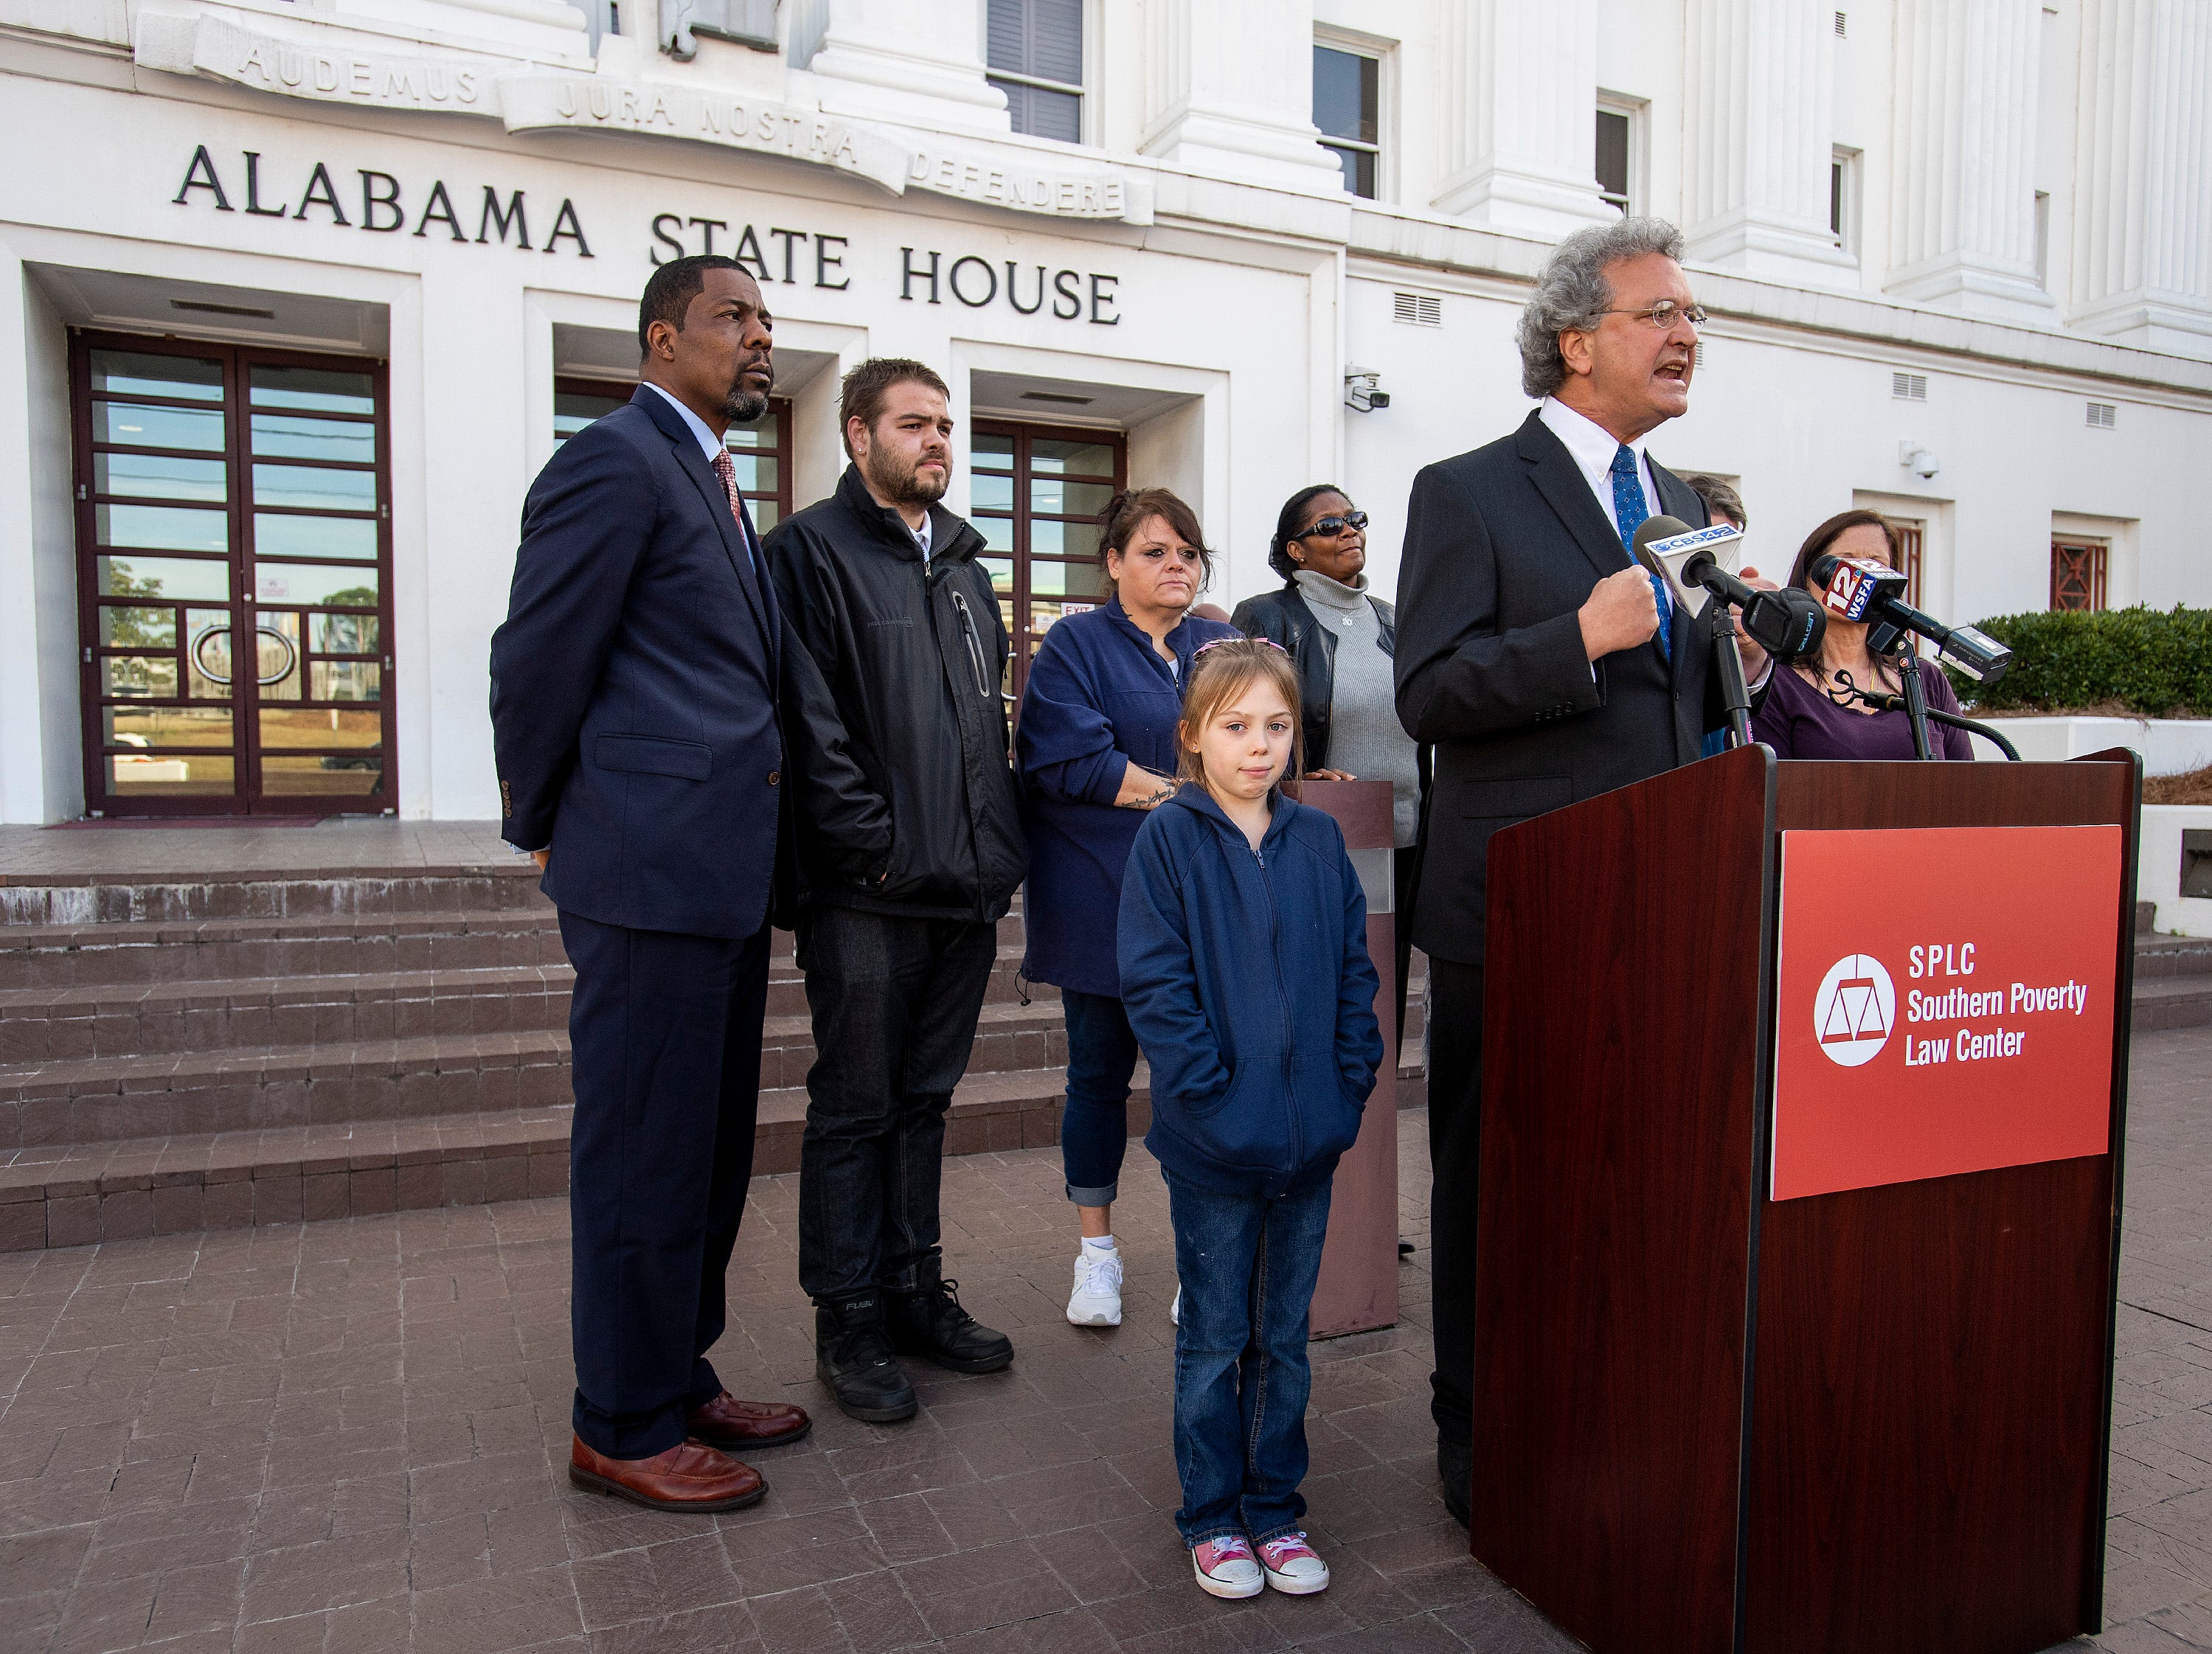 Richard Cohen, president of Southern Poverty Law Center speaks as the SPLC holds a press conference to update the status of their lawsuit against the Alabama Department of Corrections, dealing with the medical and mental health needs of inmates, on the steps of the Alabama Statehouse in Montgomery, Ala., on Friday February 8, 2019.